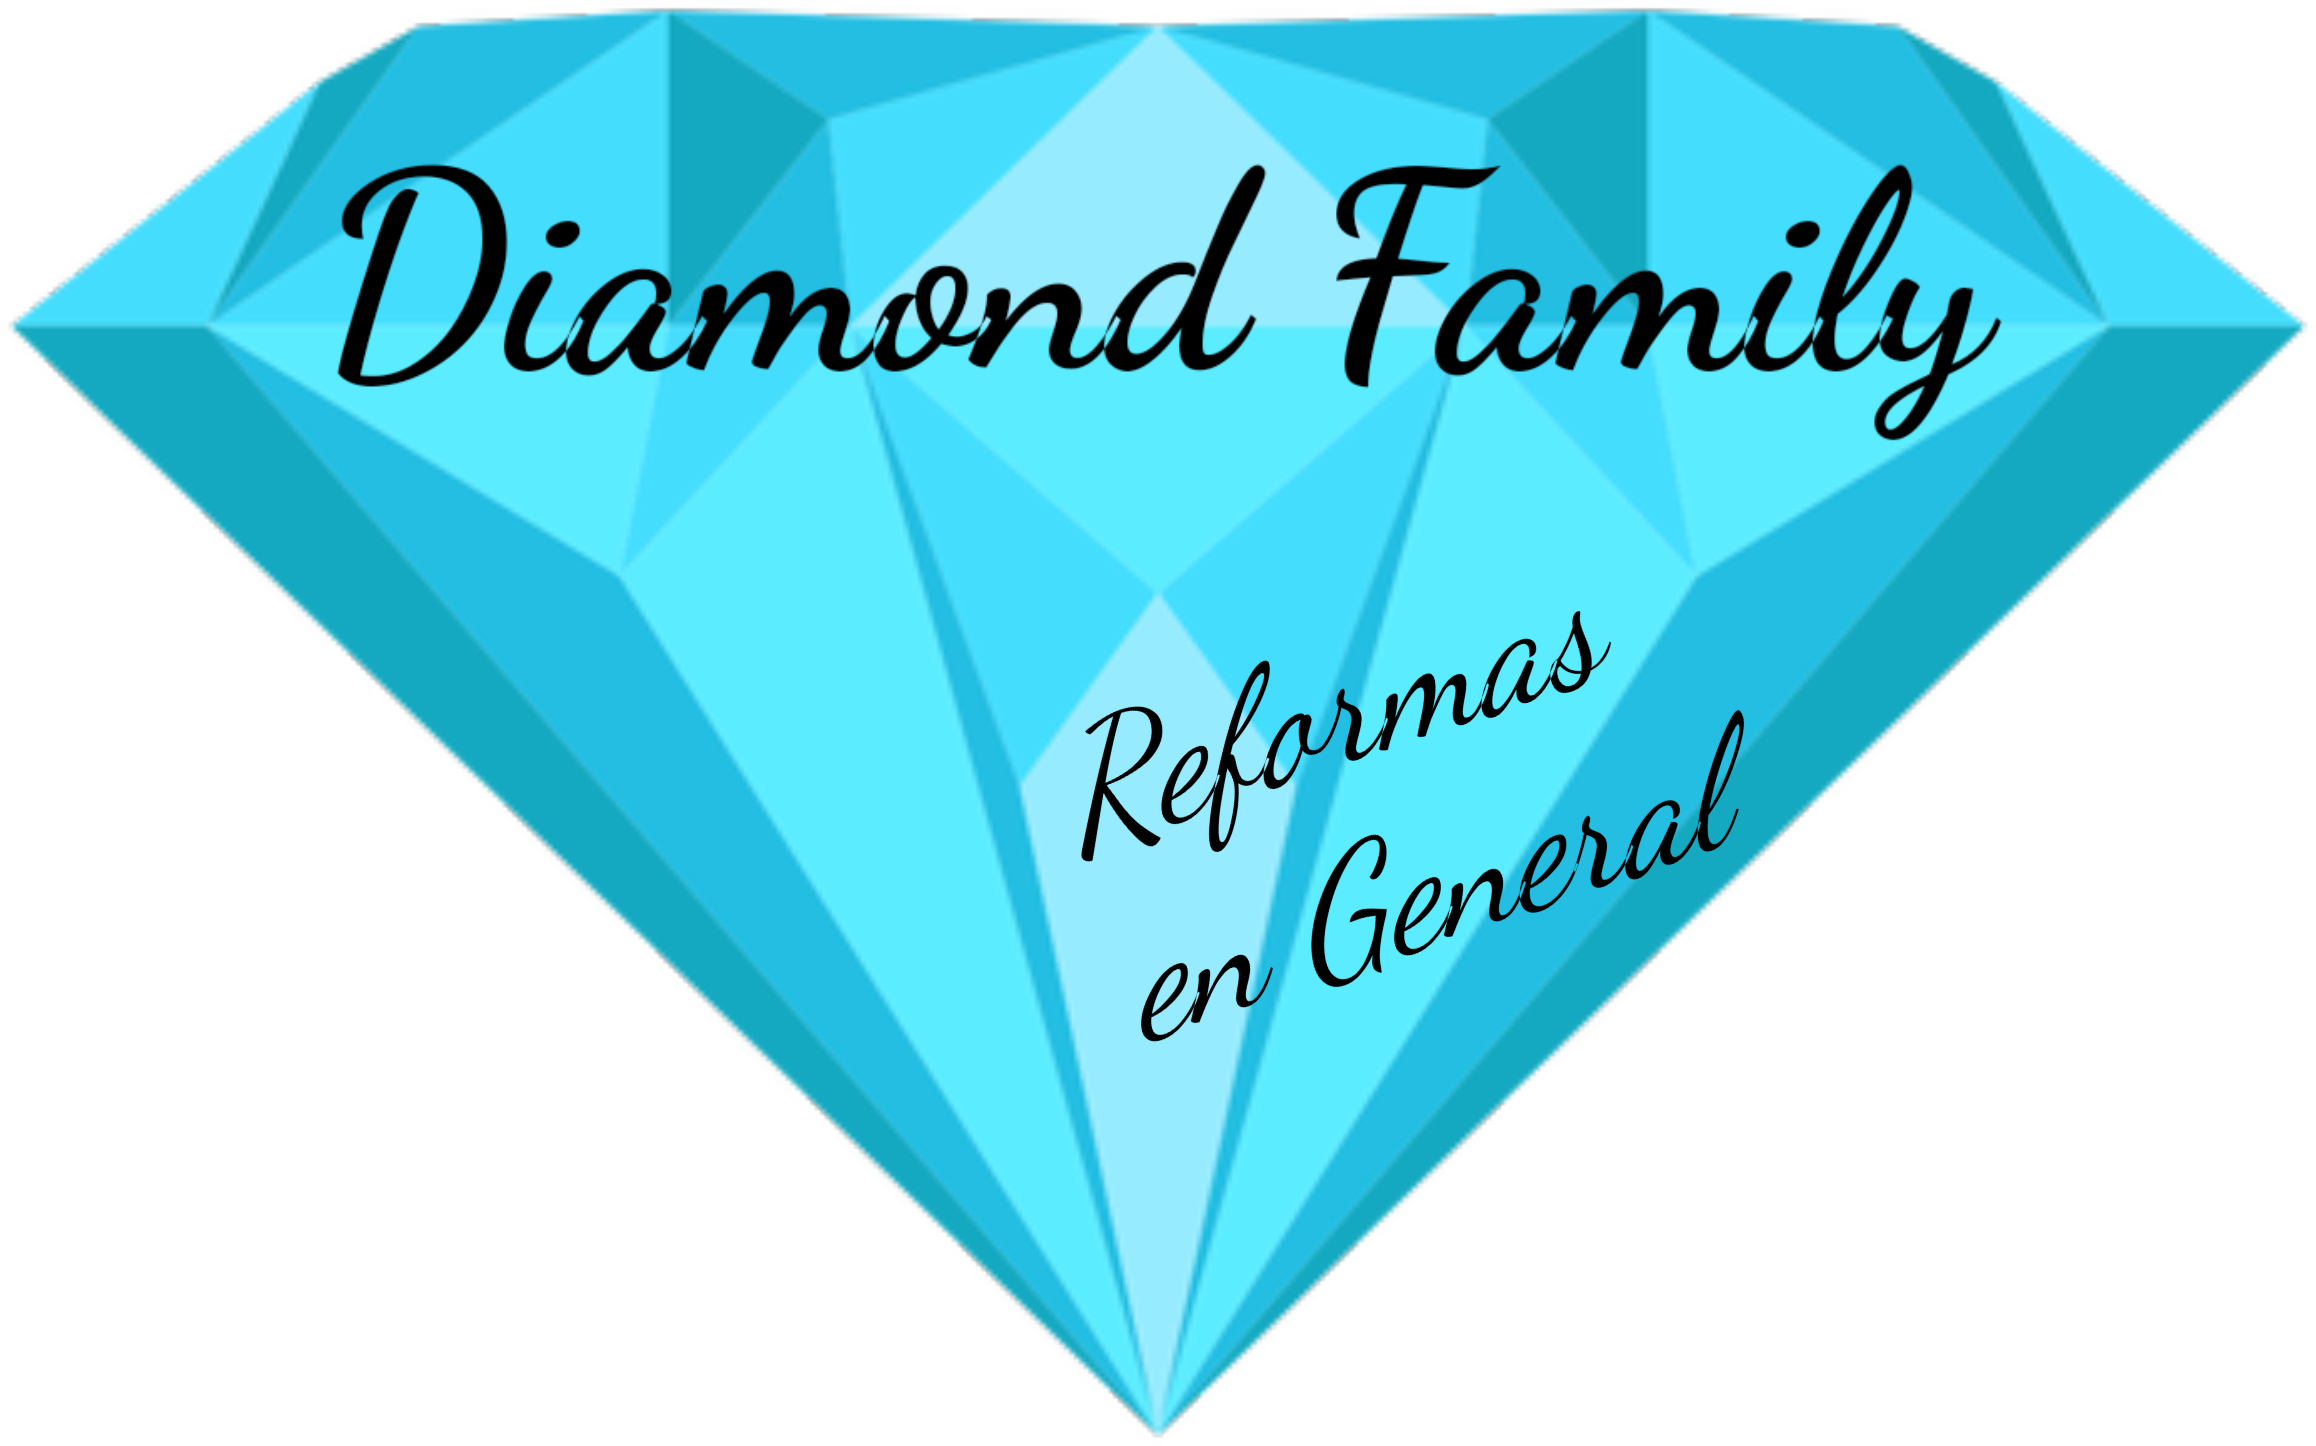 Diamond Family Reformas En General S.l